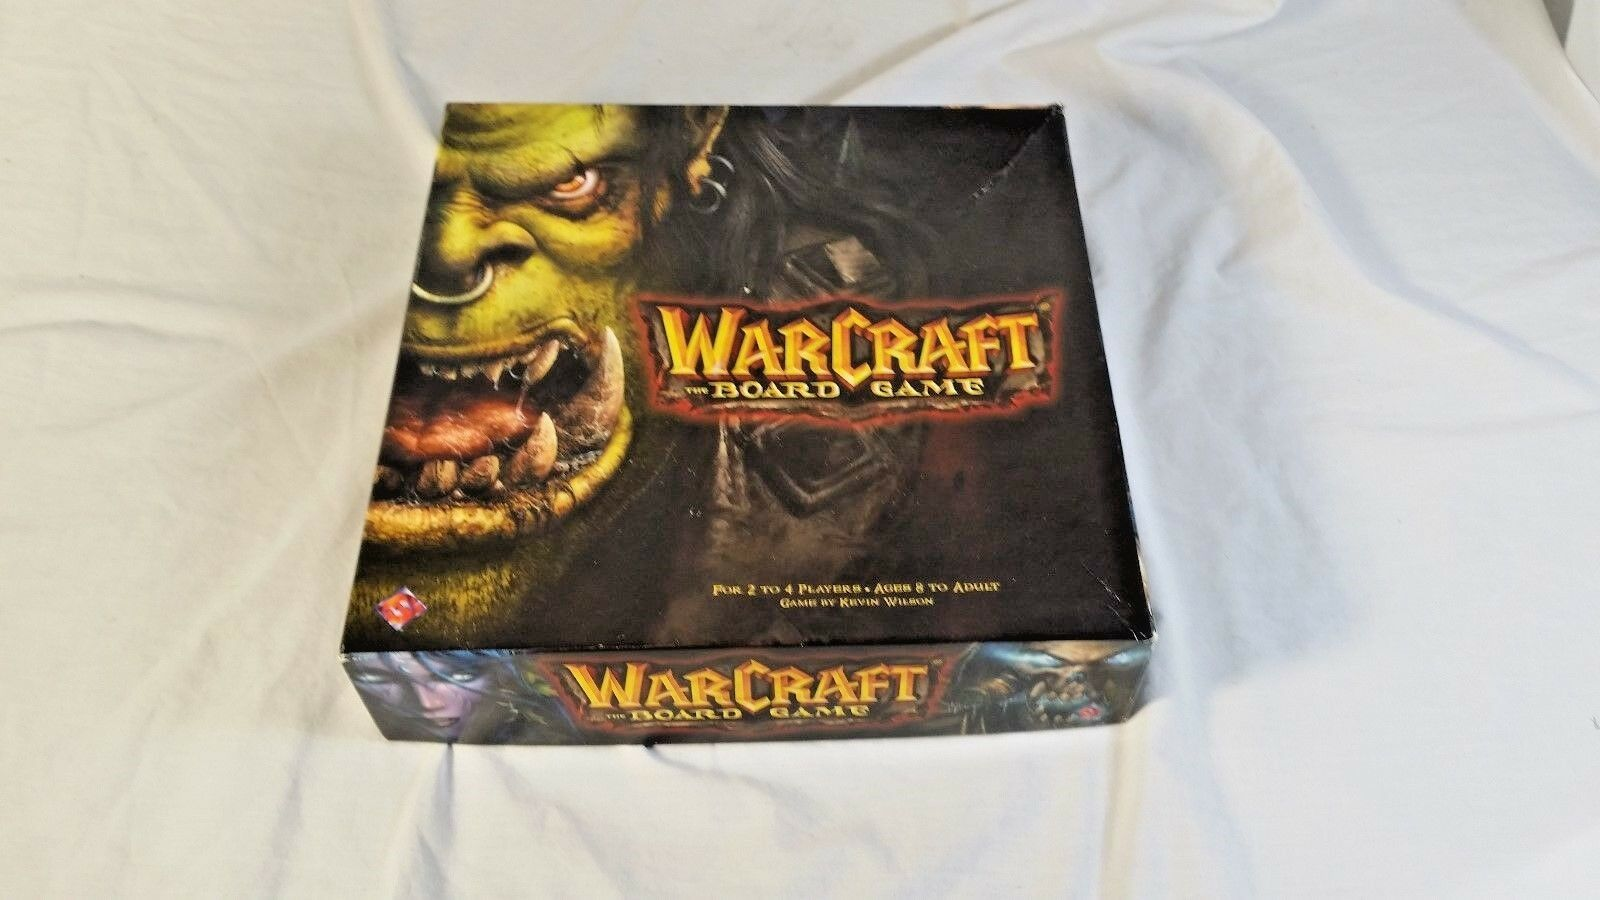 Fantasy flight brettspiel warcraft - brettspiel kasten fair - kevin wilson - wow